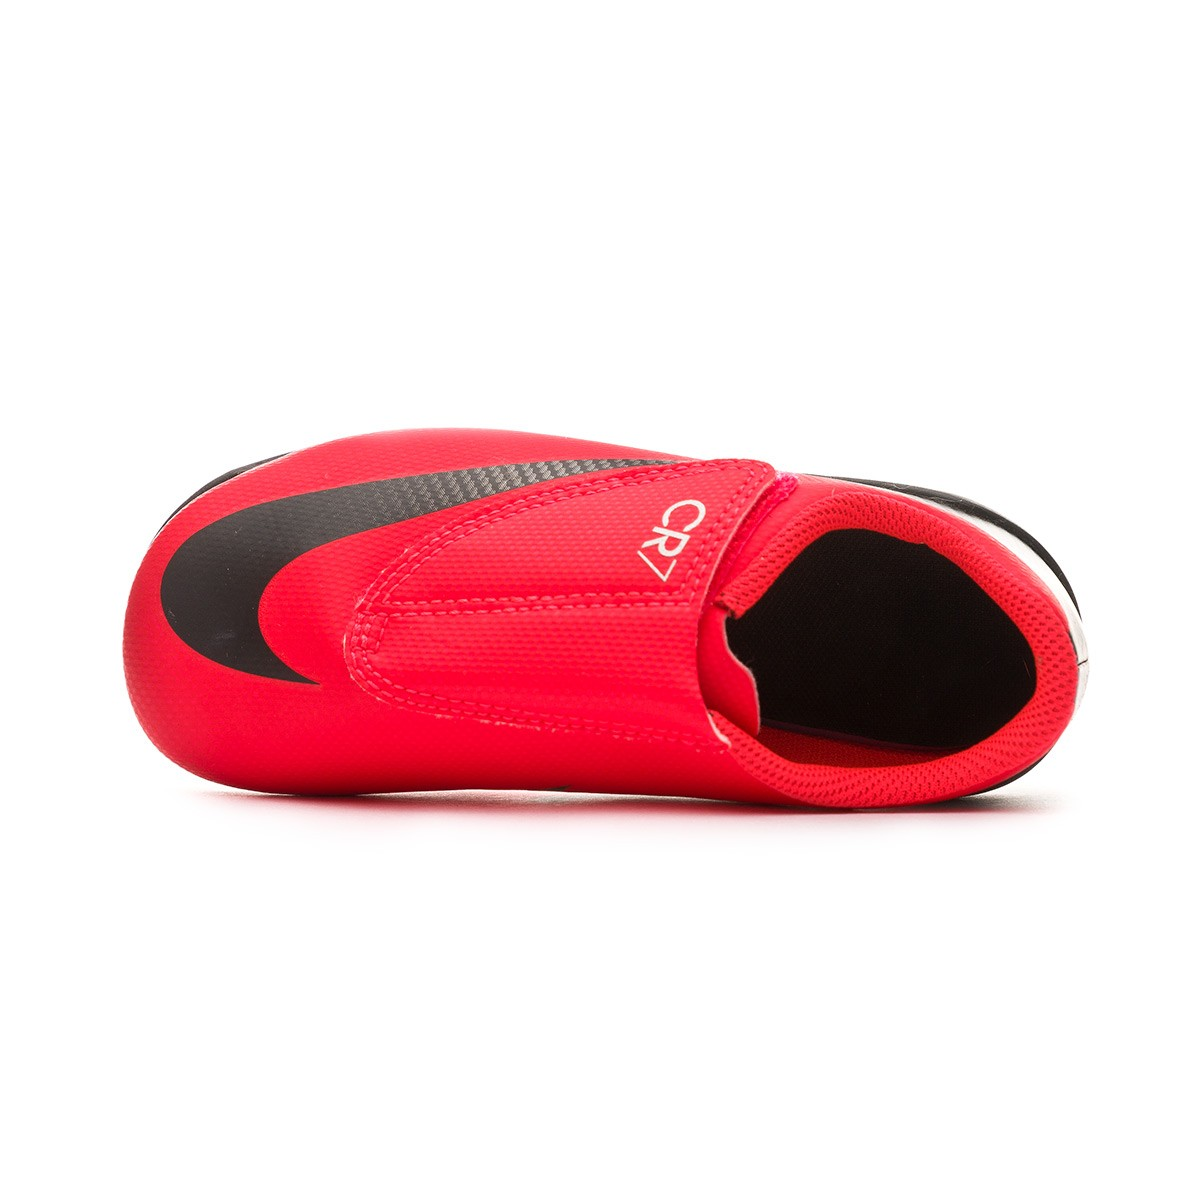 huge discount 62312 f088a Bota de fútbol Nike Mercurial Vapor XII Club CR7 MG Niño Bright  crimson-Black-Chrome - Leaked soccer